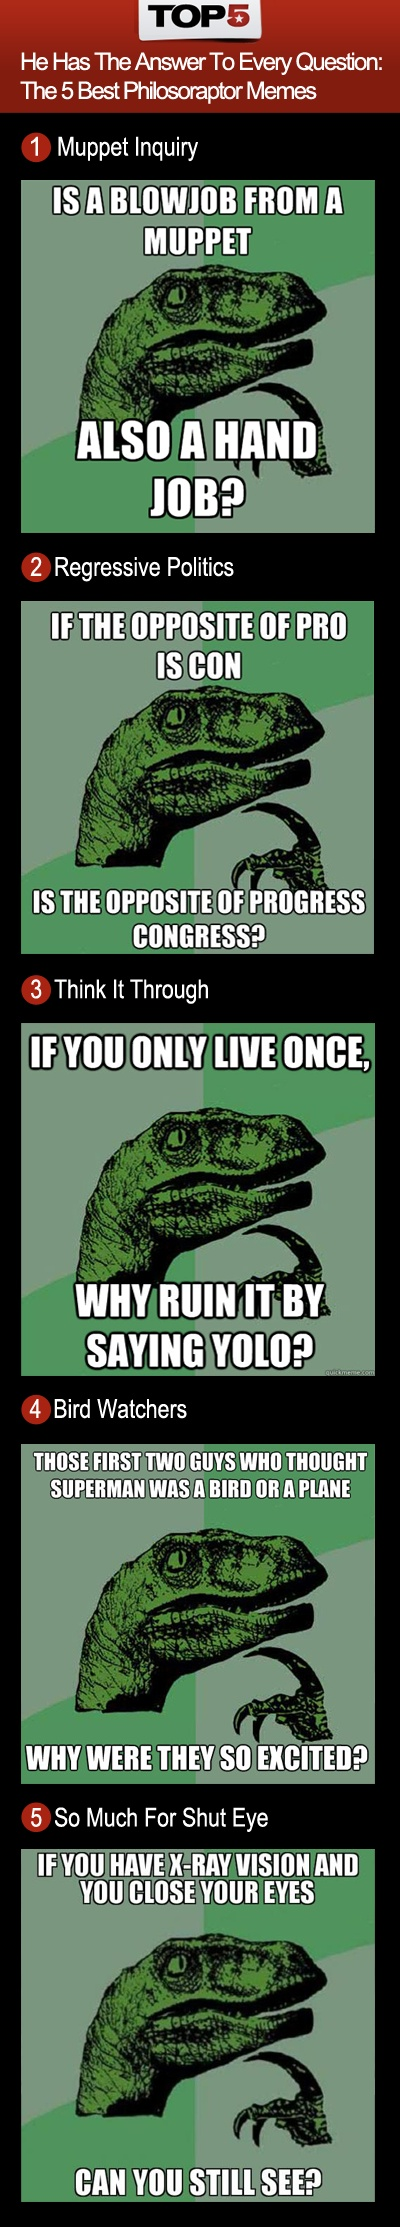 He has the answer to every question the 5 best philosoraptor memes top5